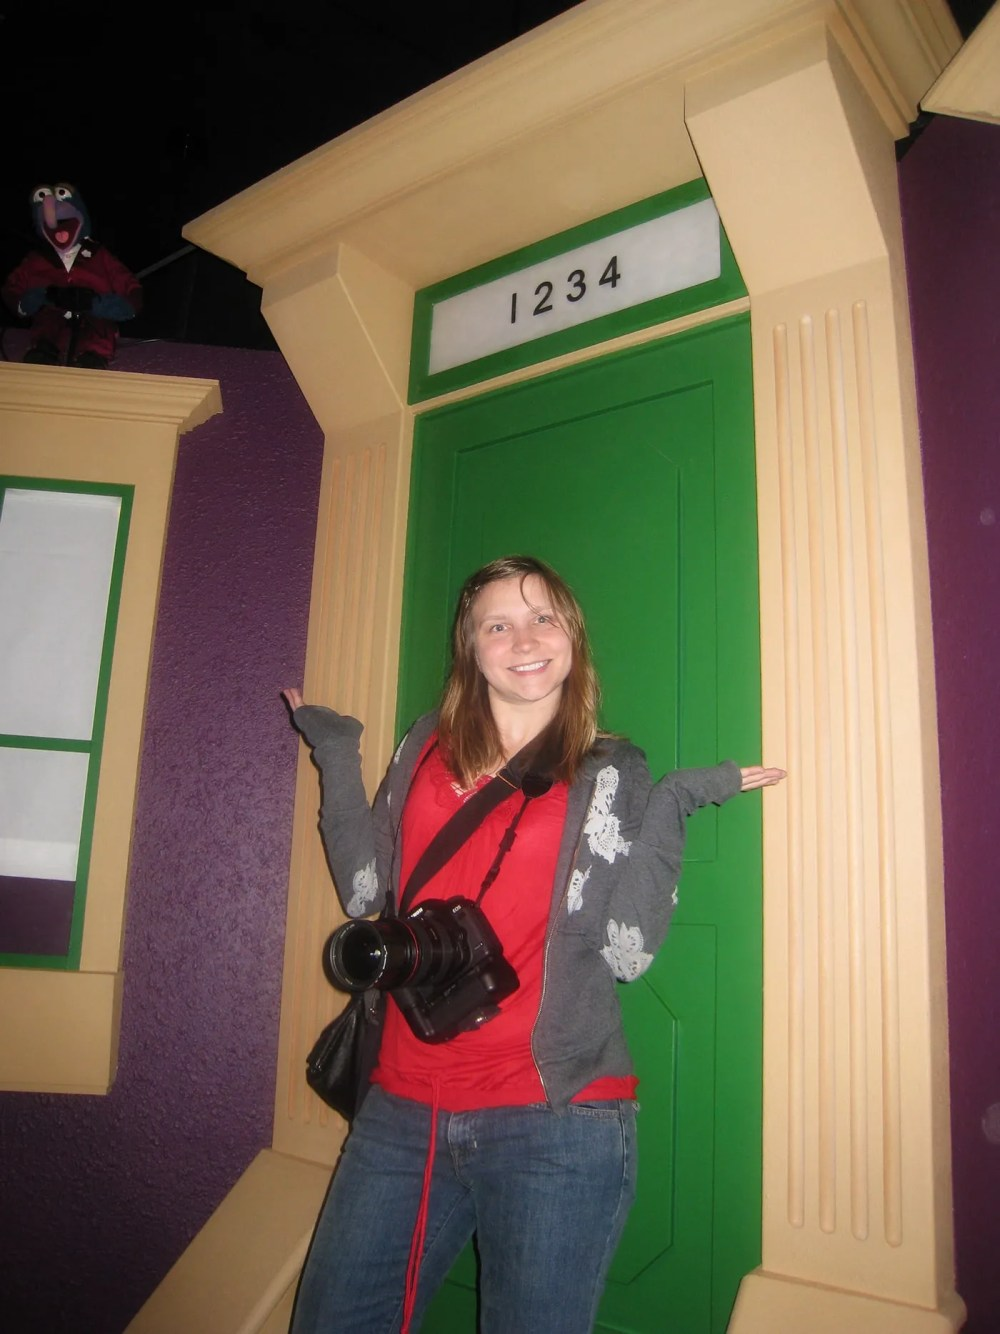 Val in front of a Sesame Street door at the Jim Henson's Fantastic World exhibit at the Experience Music Project/Science Fiction Museum in Seattle, Washington.